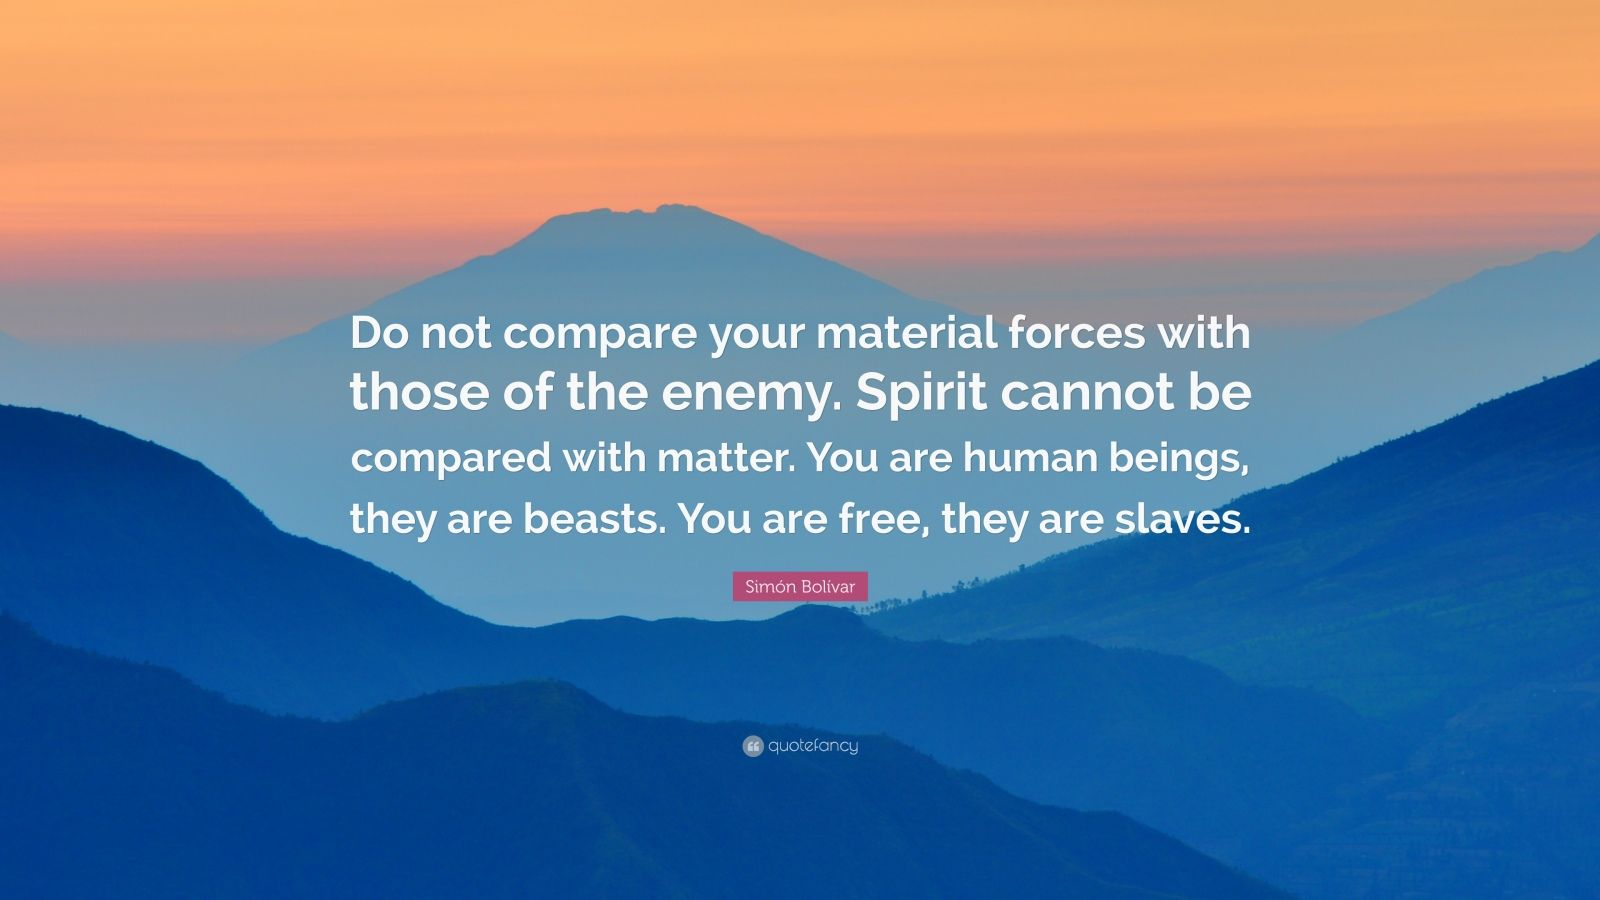 """Simón Bolívar Quote: """"Do not compare your material forces with those of the enemy. Spirit cannot be compared with matter. You are human beings, they are beasts. You are free, they are slaves."""""""